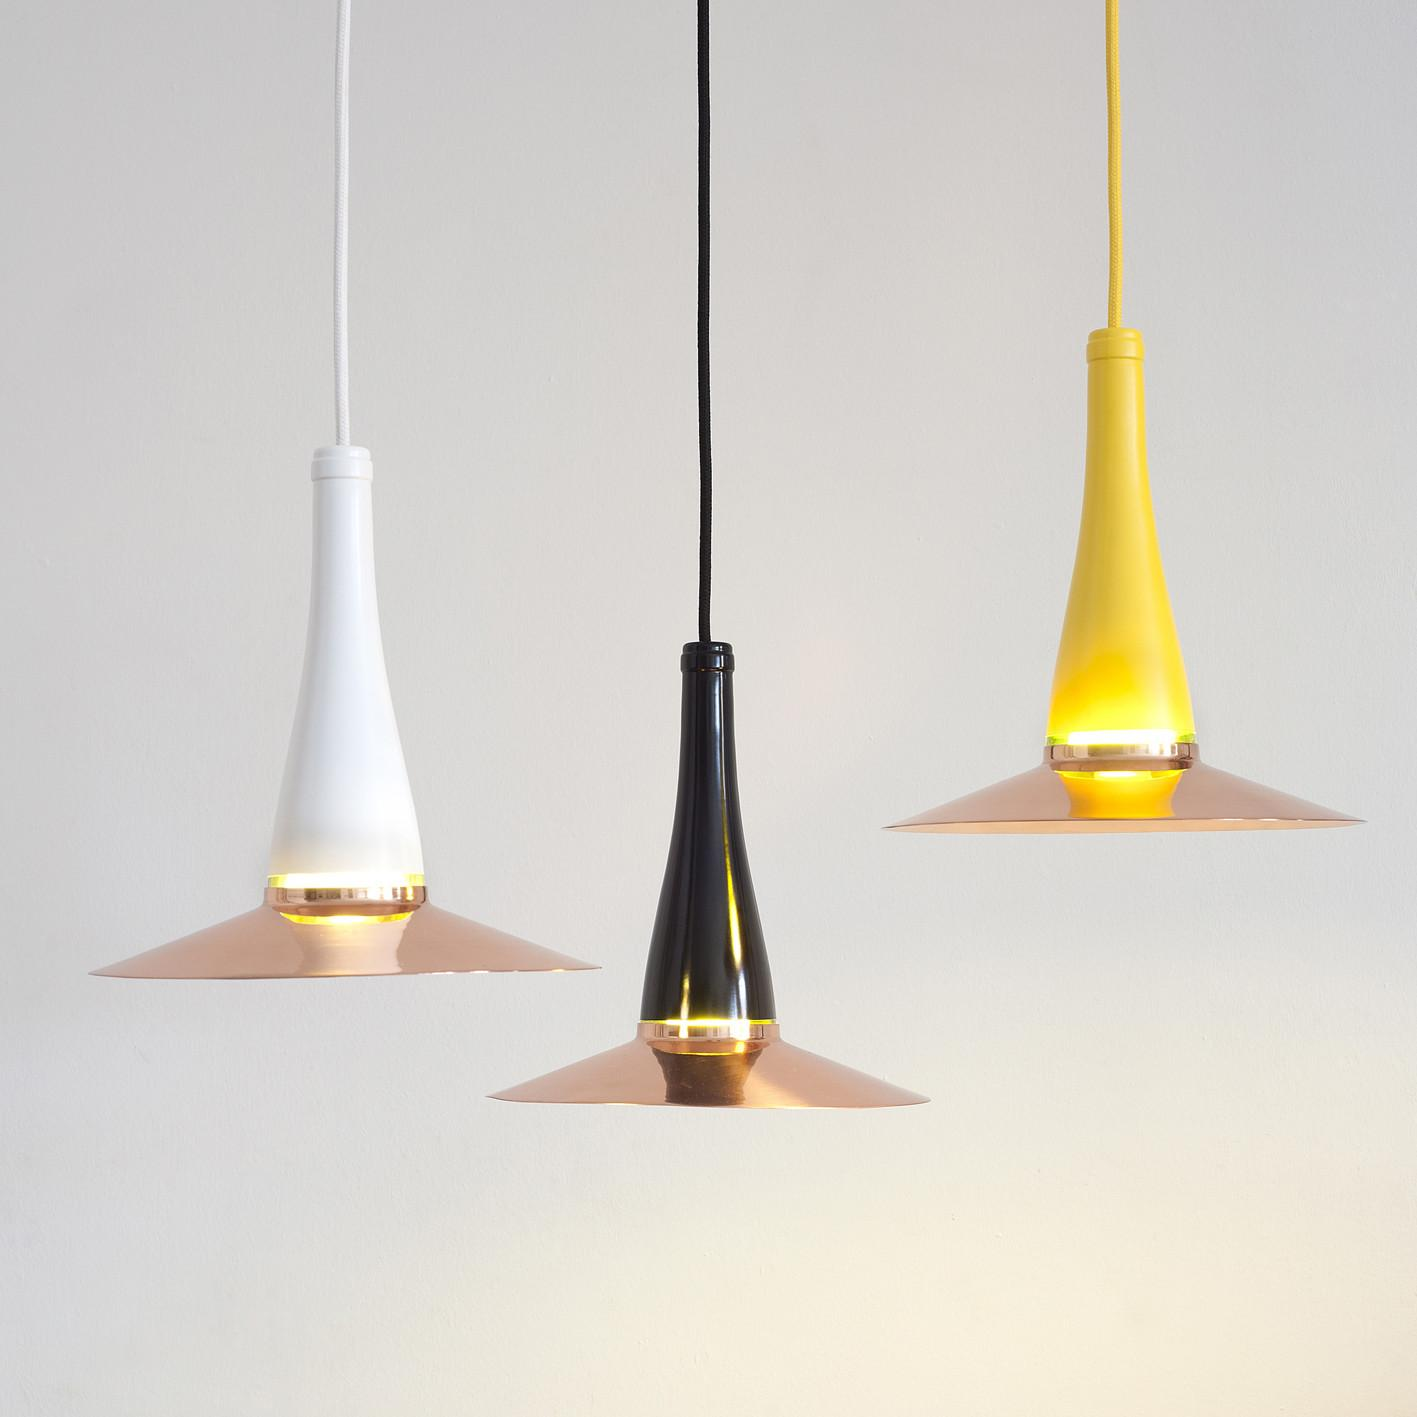 Lucirm Presents Laflor Lamp Upcycled Wine Bottle